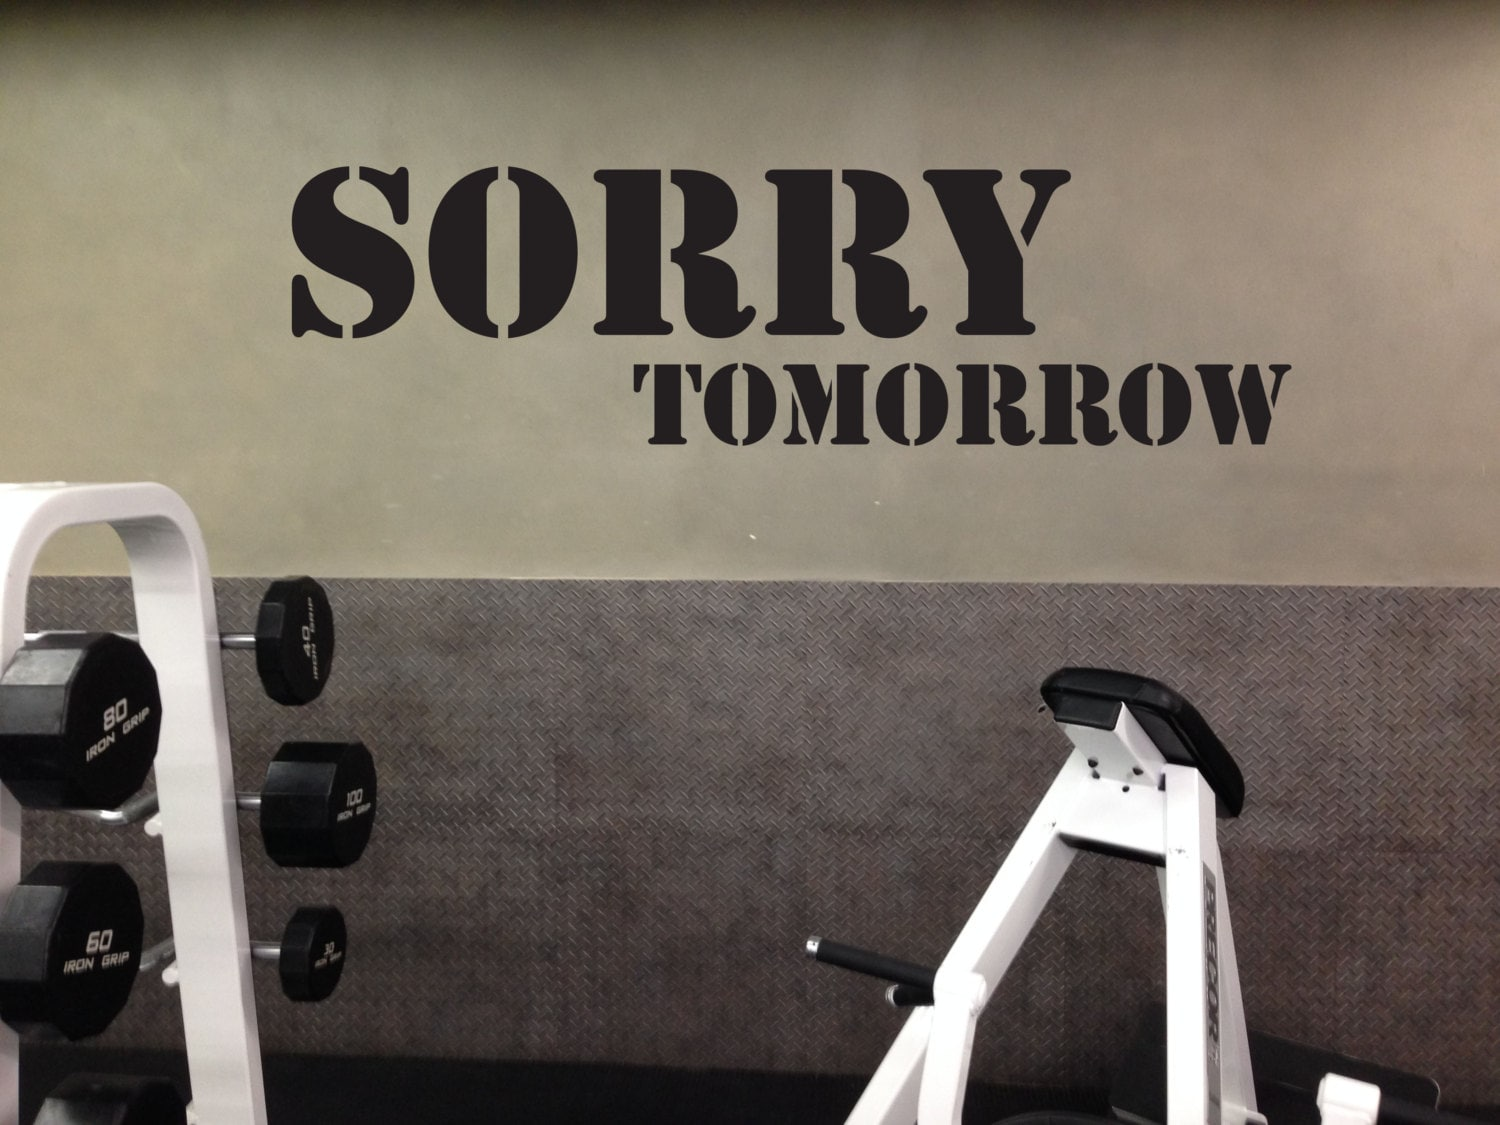 Work out essentials gym wall decal sorry tomorrow